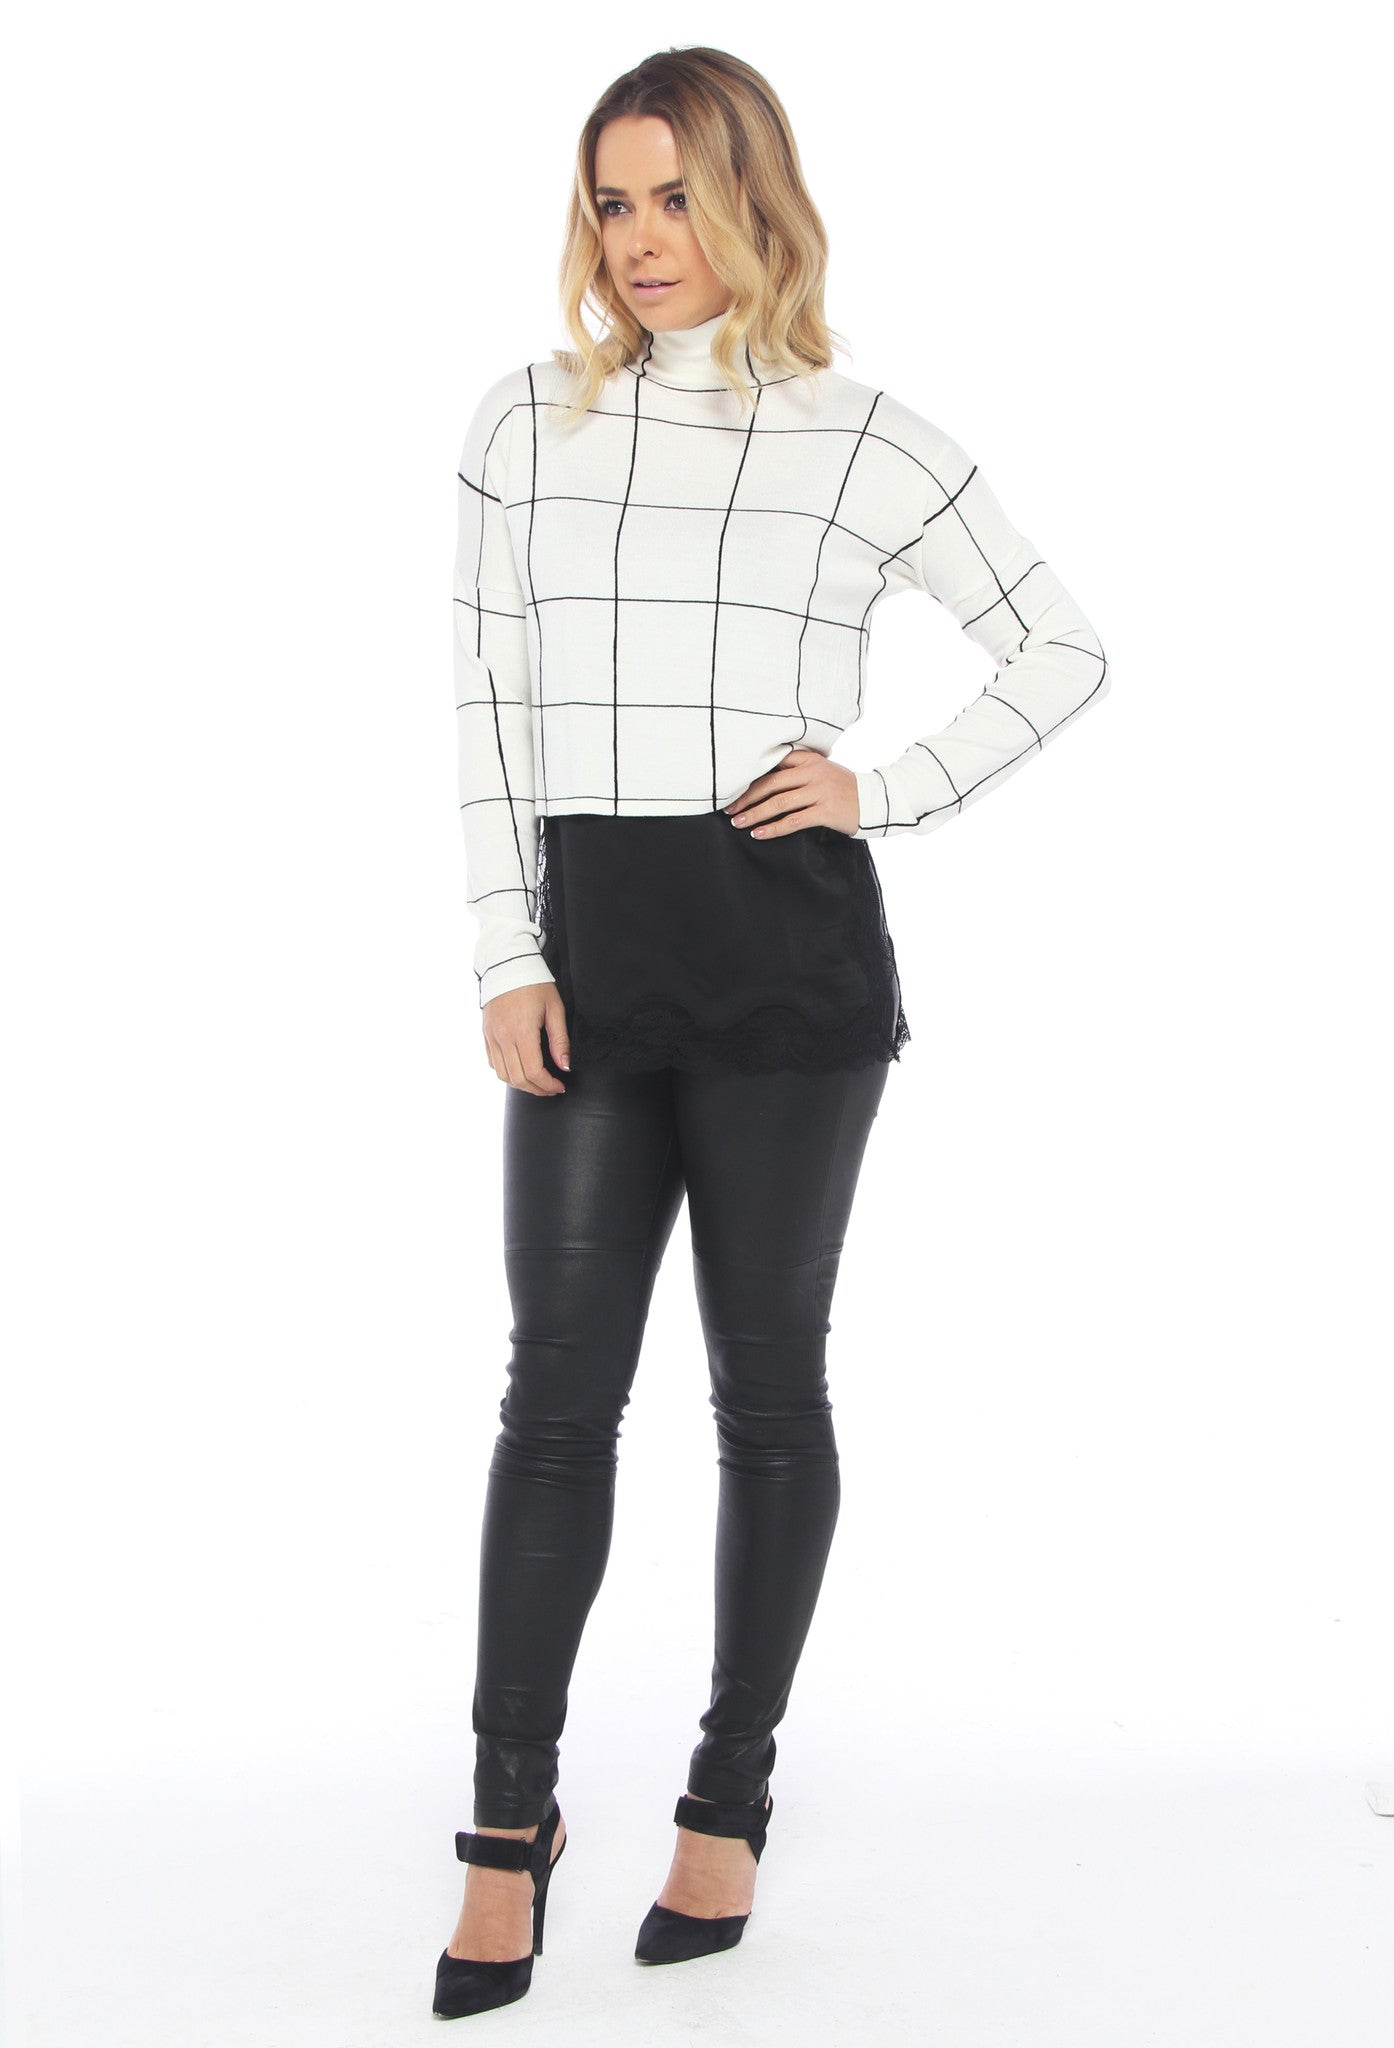 Monochrome Grid Crop Sweater - THE OUT LANE